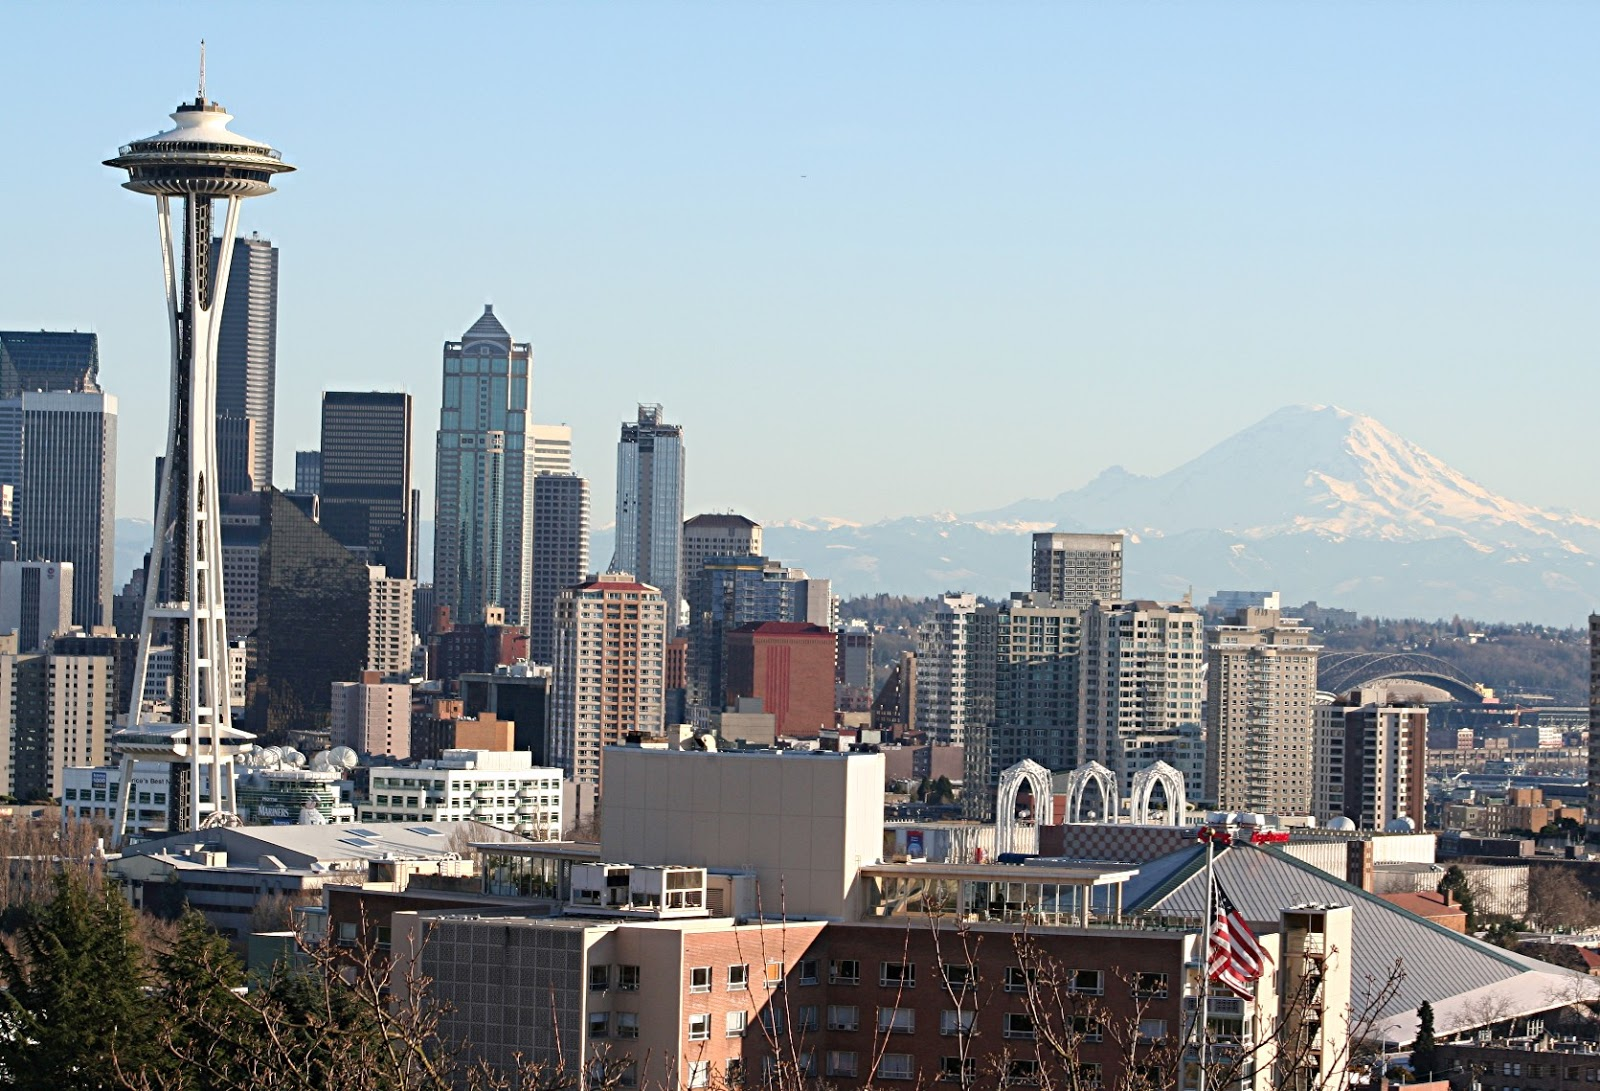 Robert abalos real estate report frasier crane in seattle for Seattle view apartments